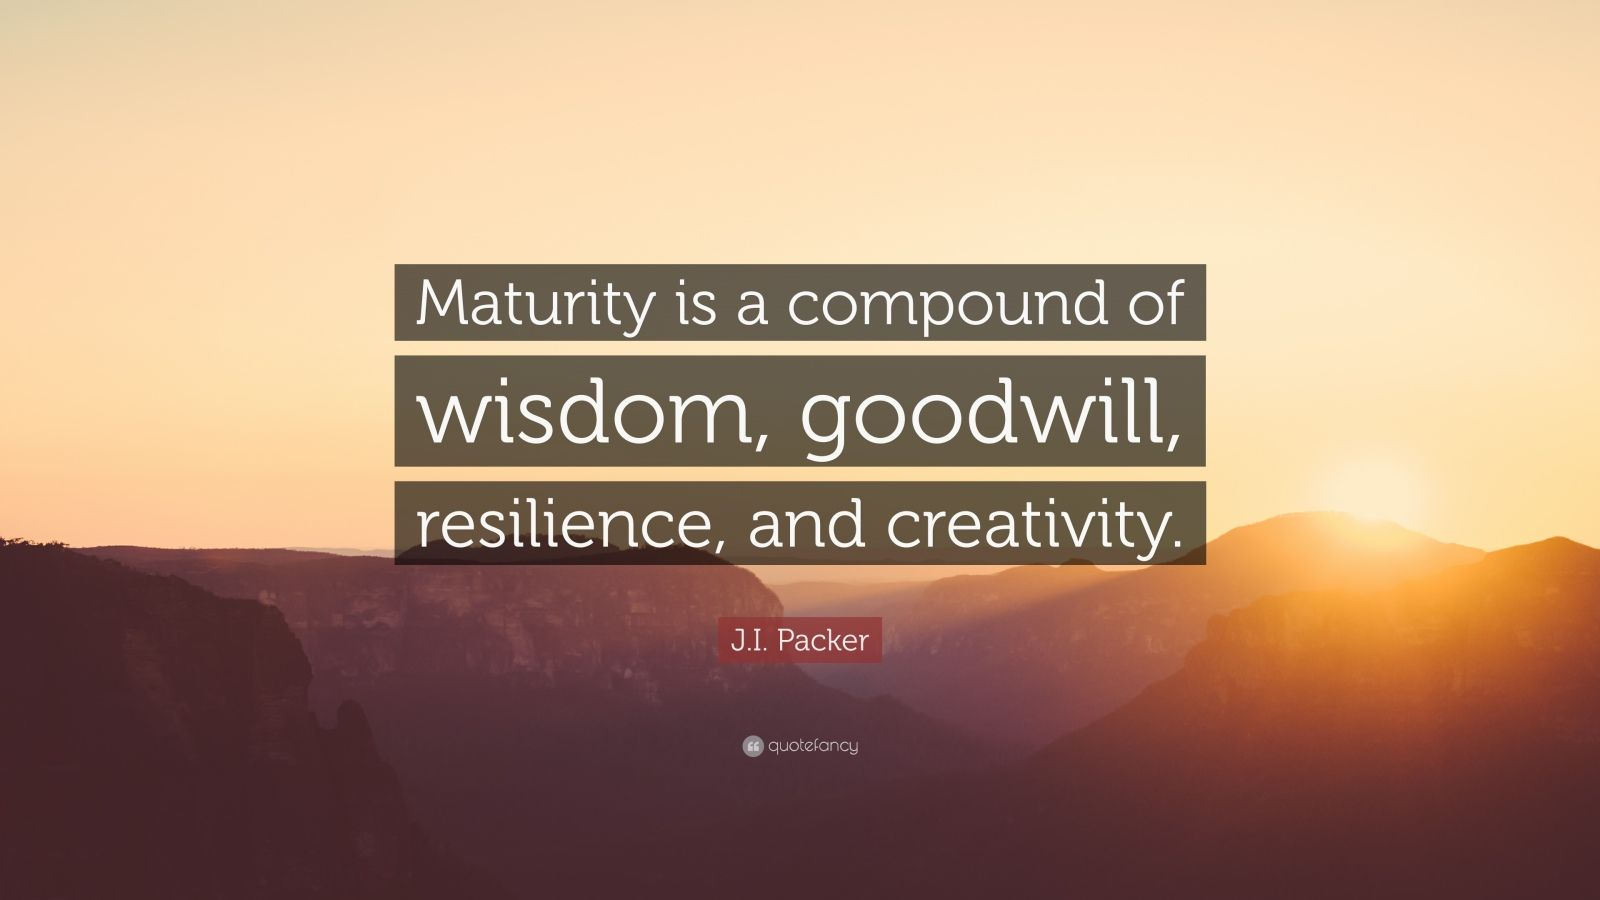 """J.I. Packer Quote: """"Maturity is a compound of wisdom, goodwill, resilience, and creativity."""""""